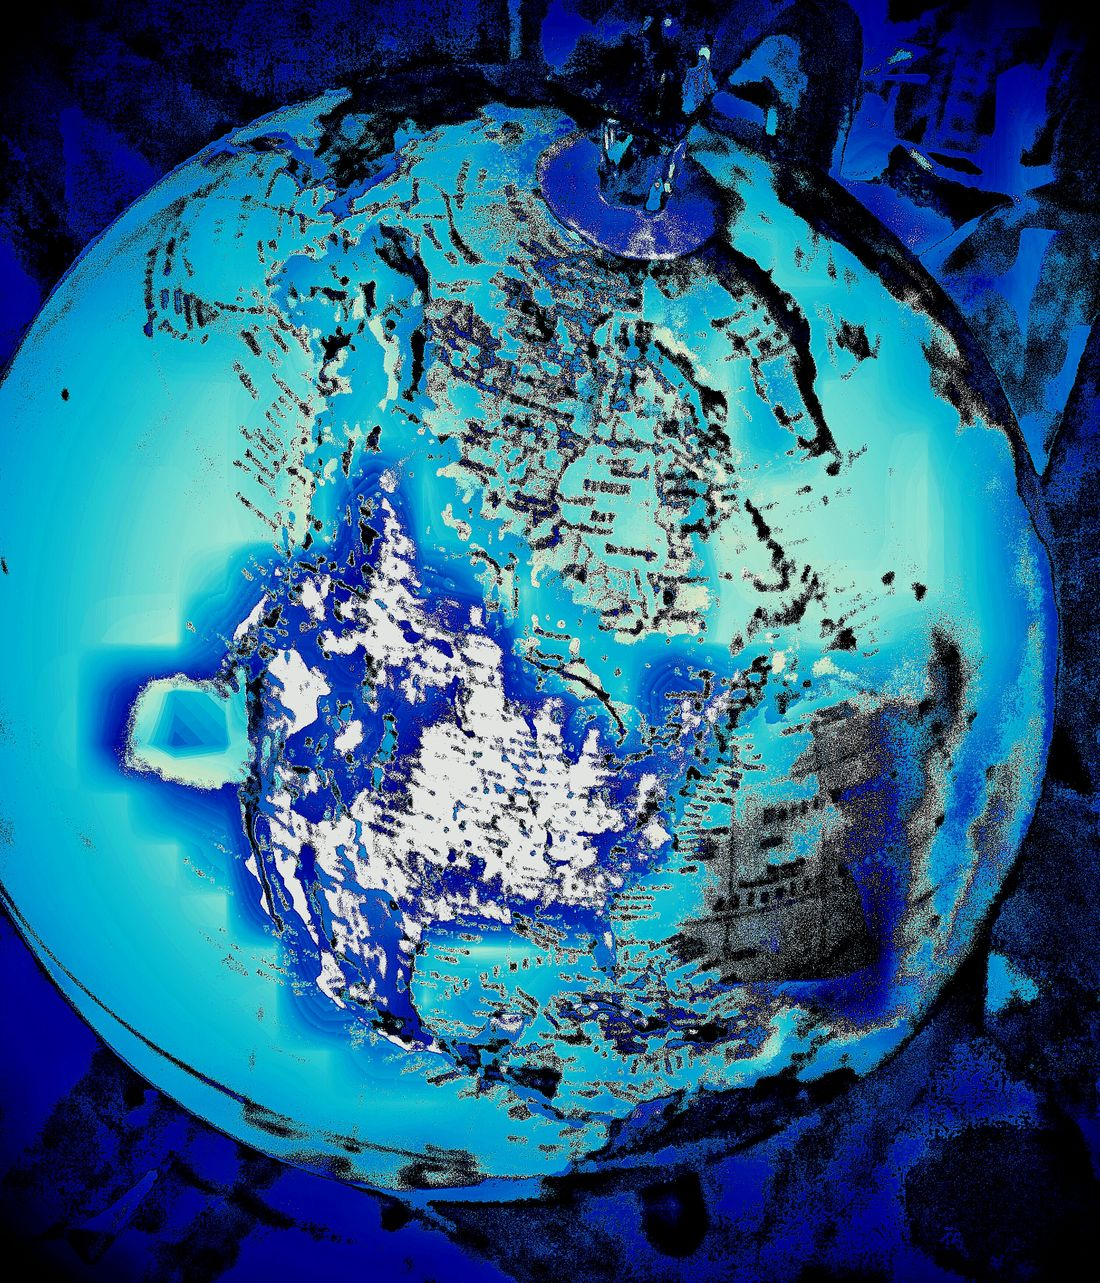 Effects North America 2065 Forever Changed Catastrophic Eventsglobal melt with massive tectonic activity in the pacific, blue is water Point Of View Ice Age